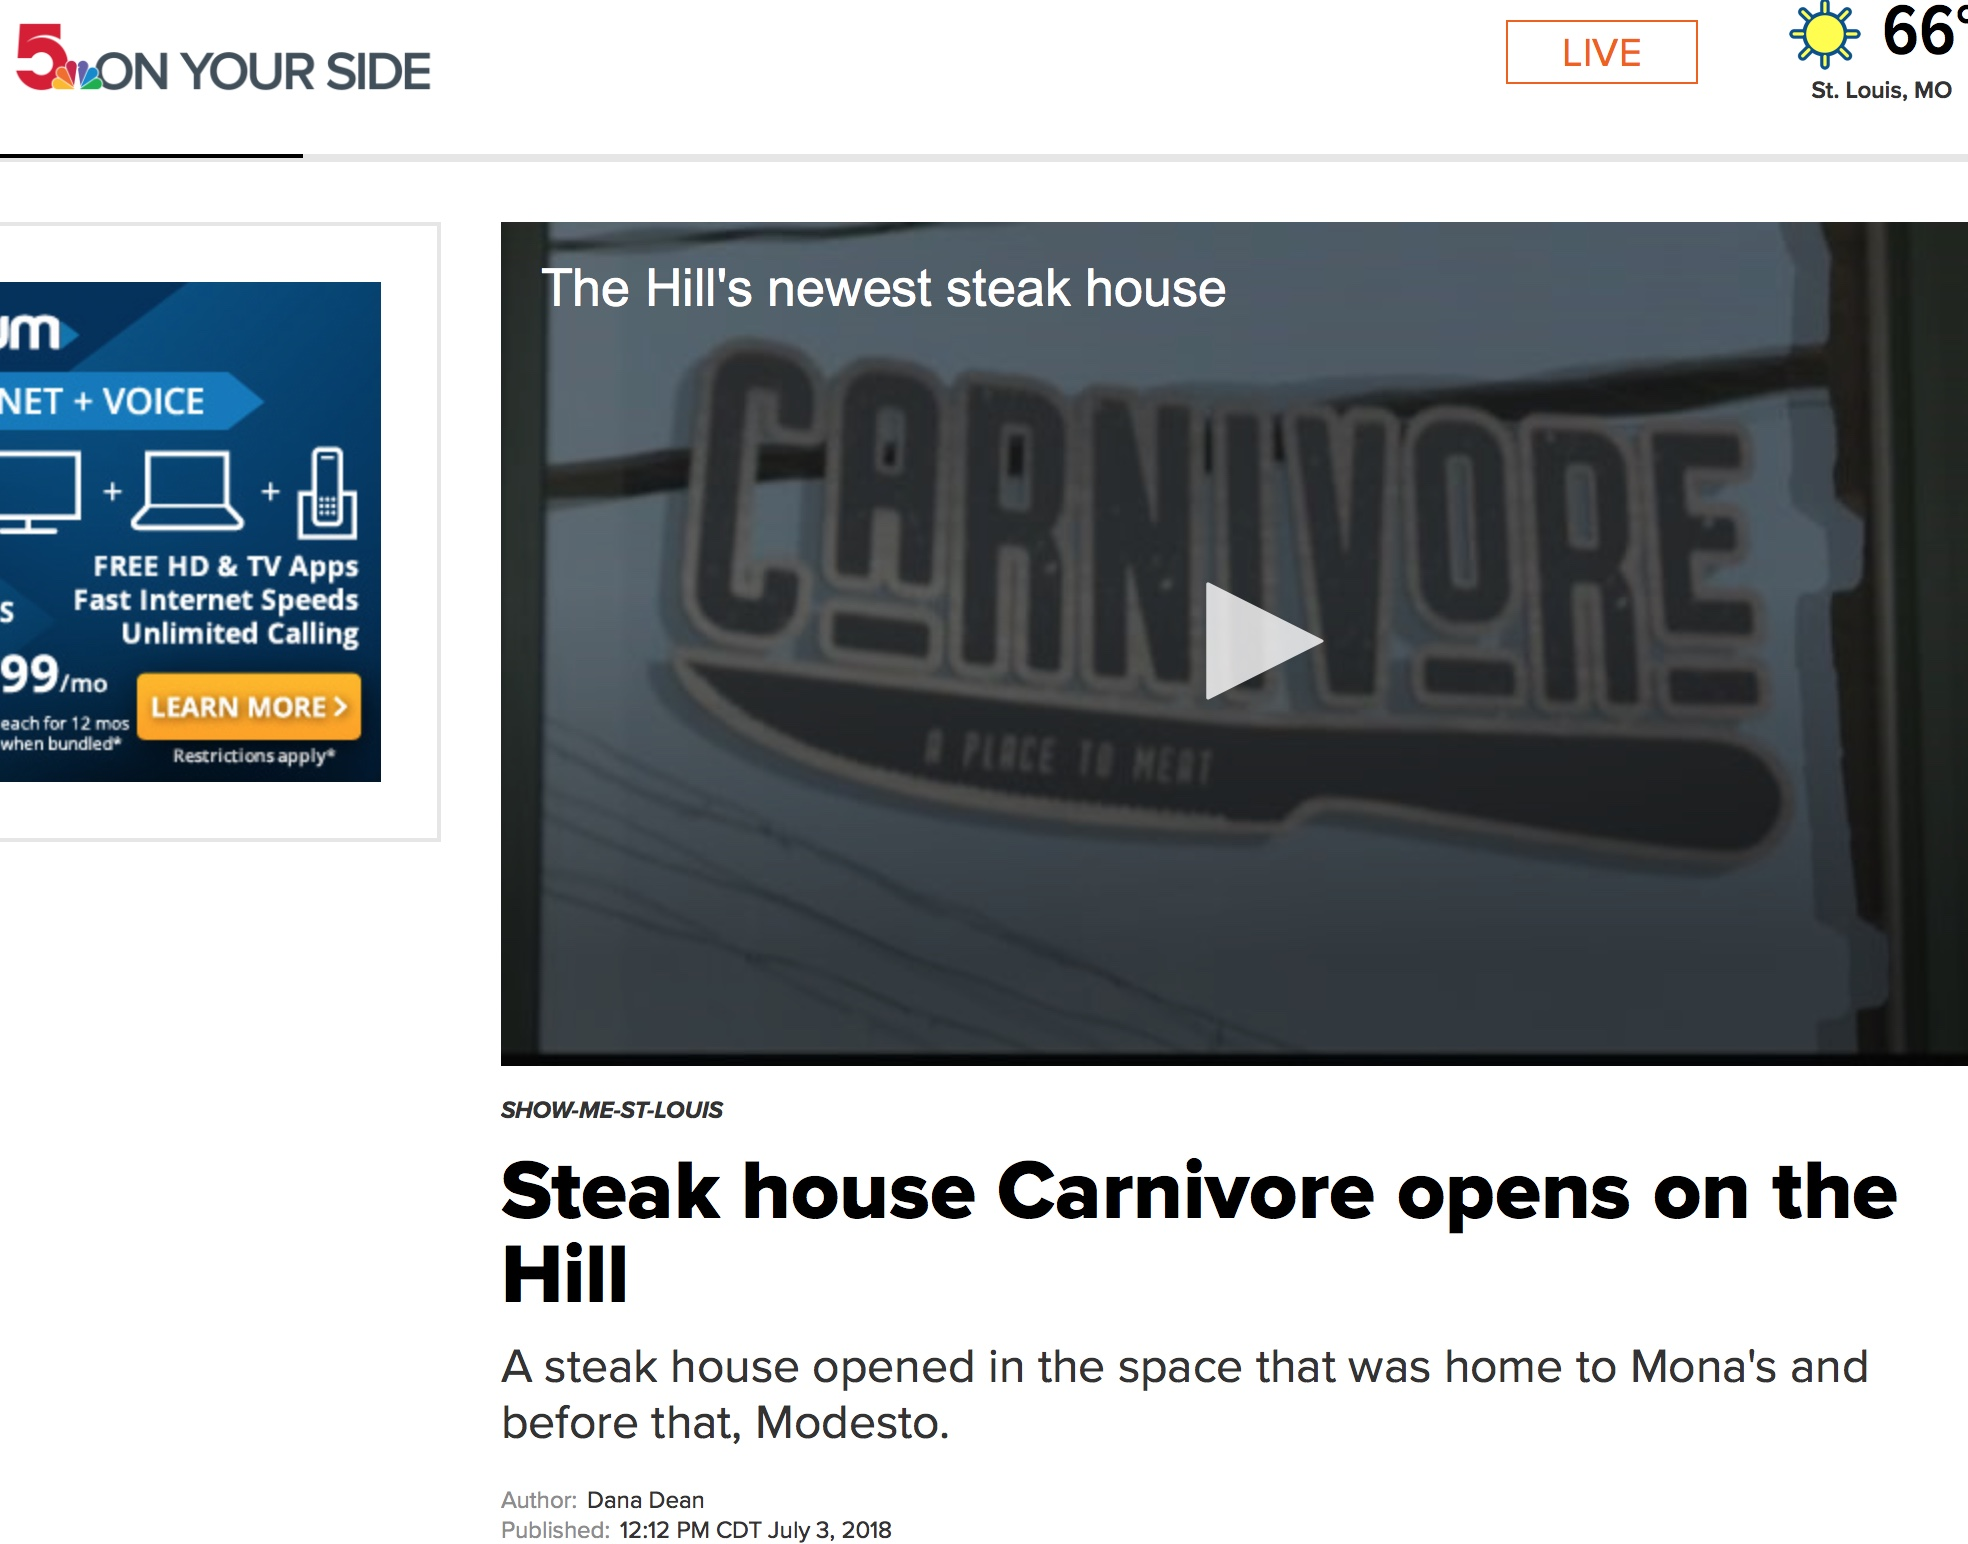 NBC (KSDK-CHANNEL 5) SHOW-ME-STL NEWS FEATUREDana Dean-July 3,2018 - ST. LOUIS — Carnivore comes from the same family who opened a barbeque joint on the Hill called J Smugs GastroPit.The steakhouse is located on the corner of Shaw and Edwards on The Hill, in the former Mona's space.The Beef Modiga Flatbread is a popular item on the menu. And of course you can a 14-ounce ribeye or 10-ounce filet with a side of shrimp.